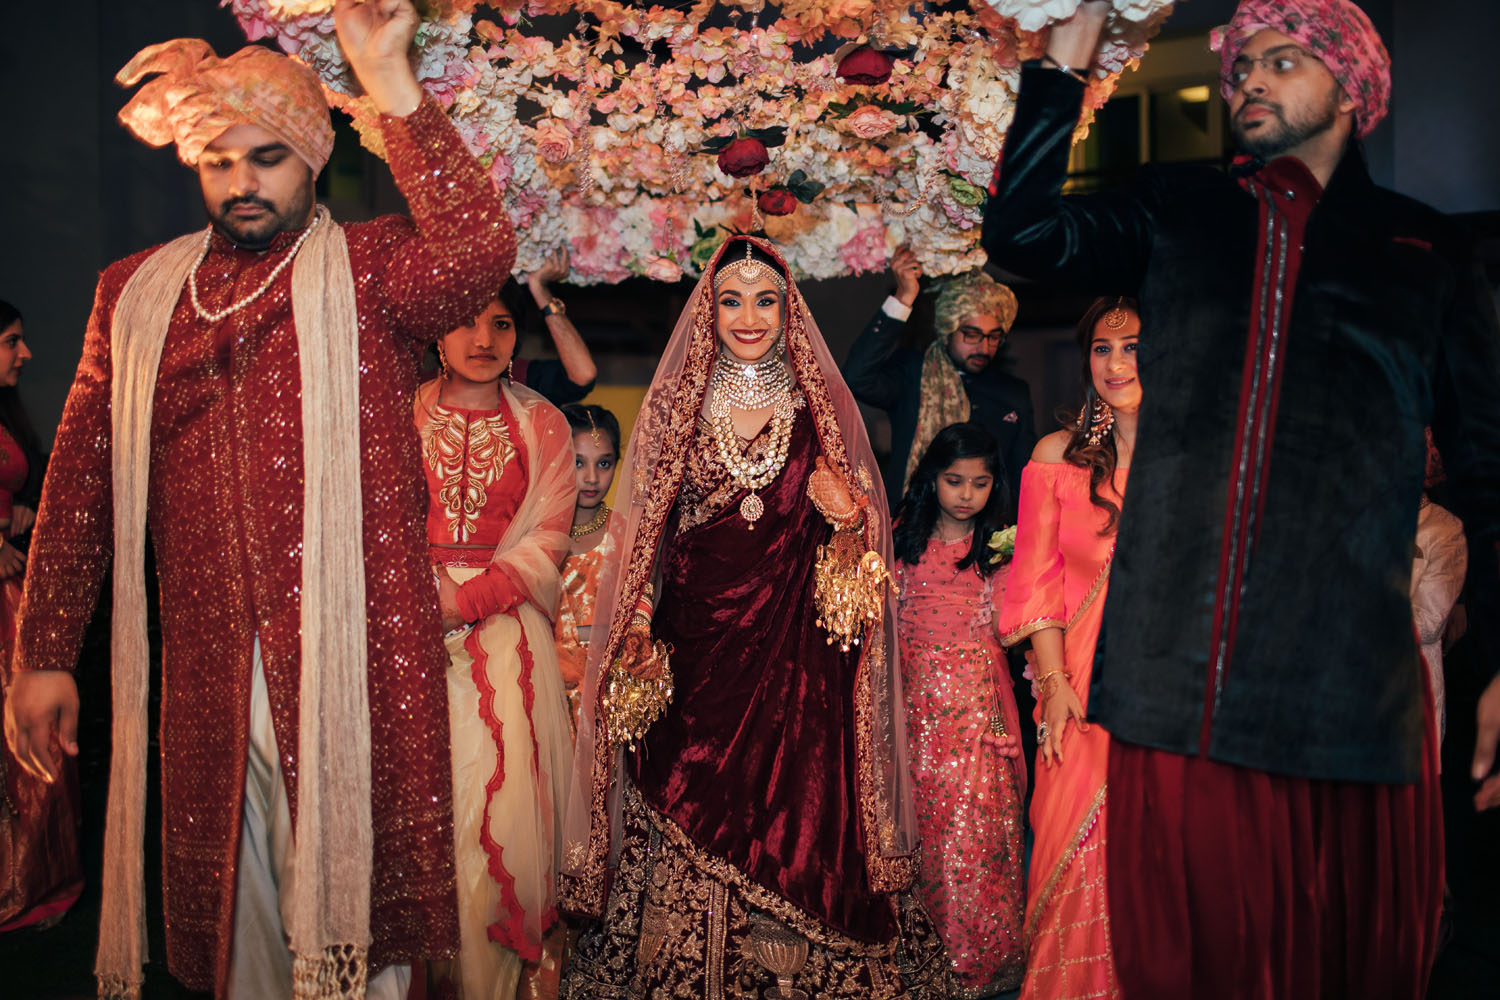 Bridal Entry in Red Outfit Under Phoolon Ki Chaadar